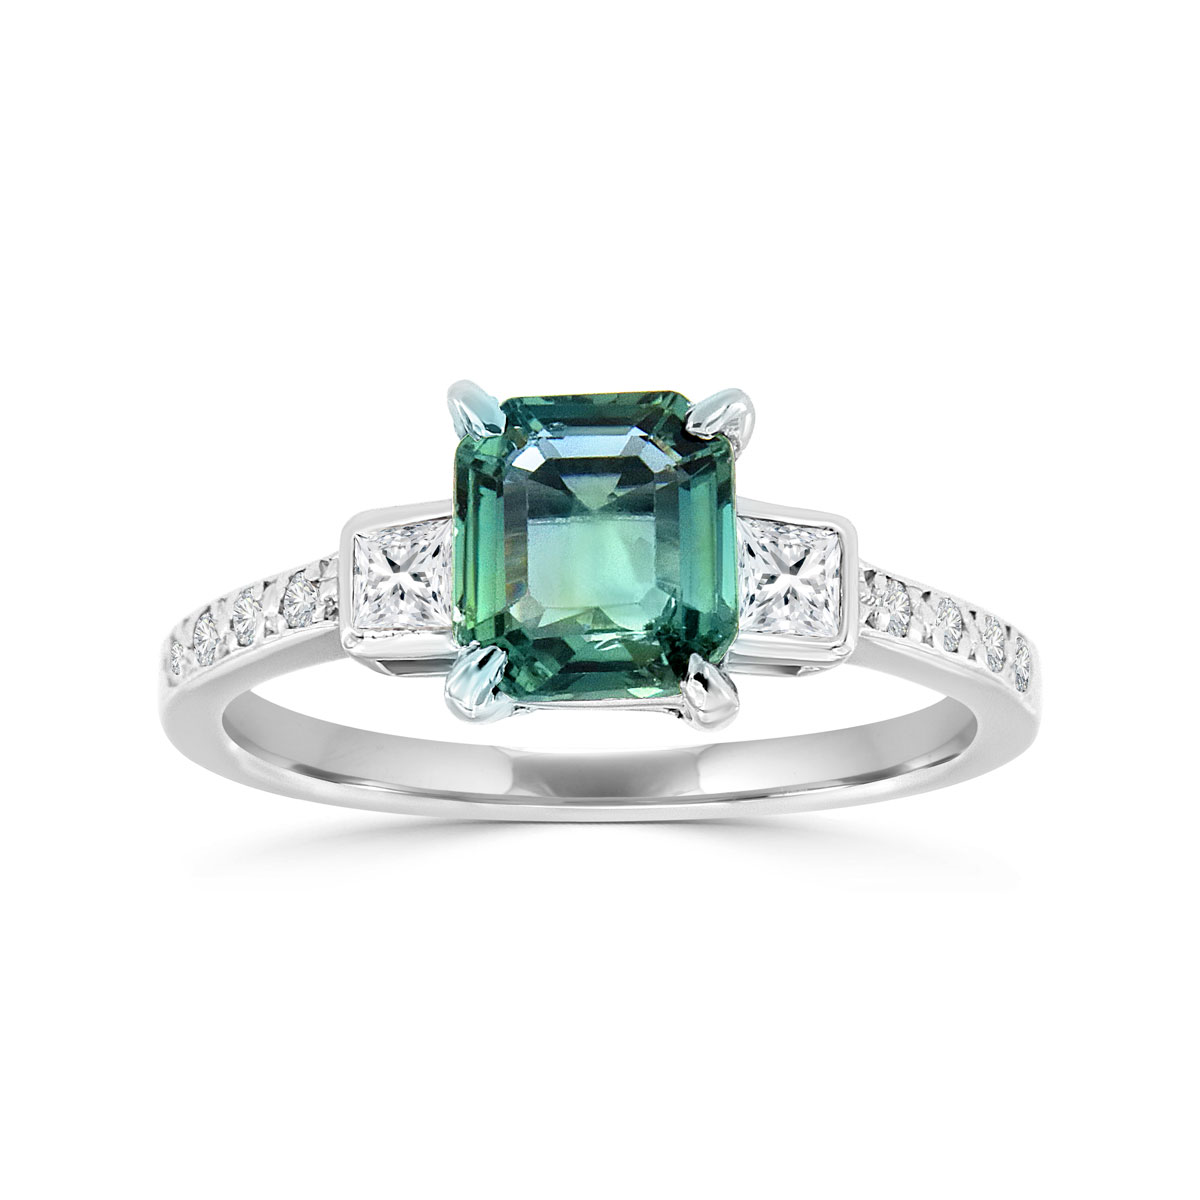 Platinum Emerald Shape Teal Sapphire & Diamond Ring ( Center-1.37 Carat)